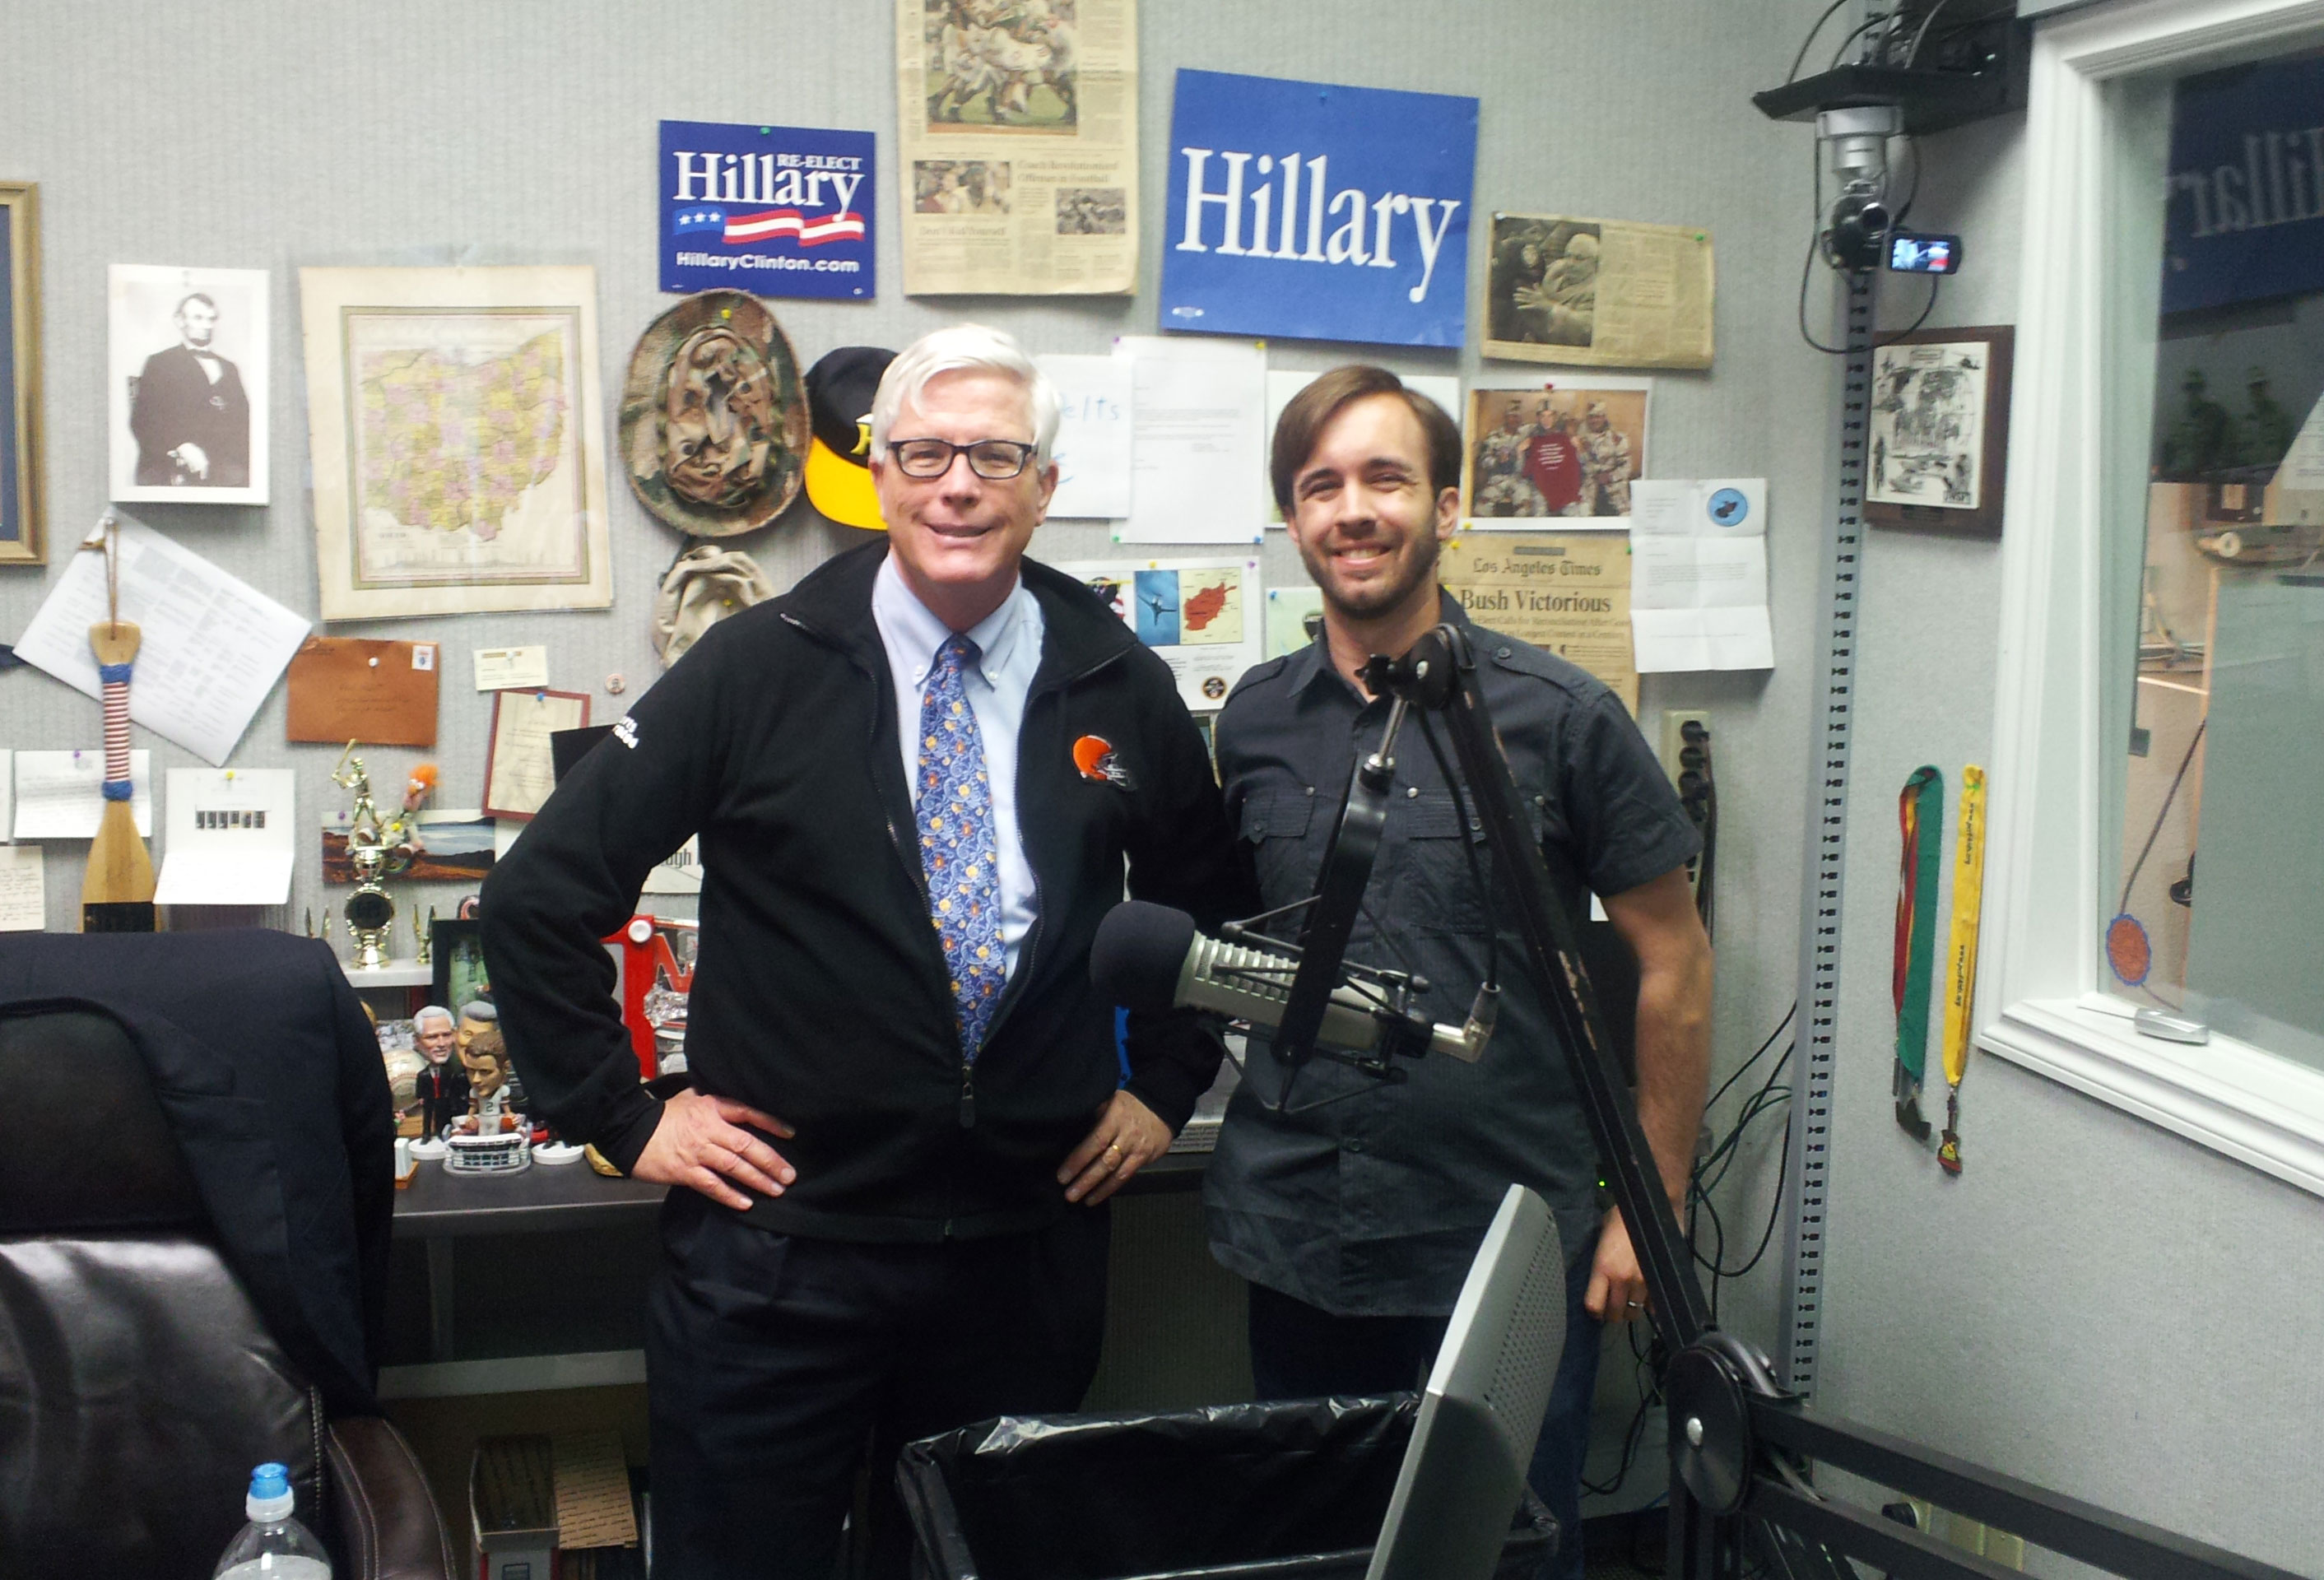 Fusion Web's Entrepreneur Hour on Hugh Hewitt